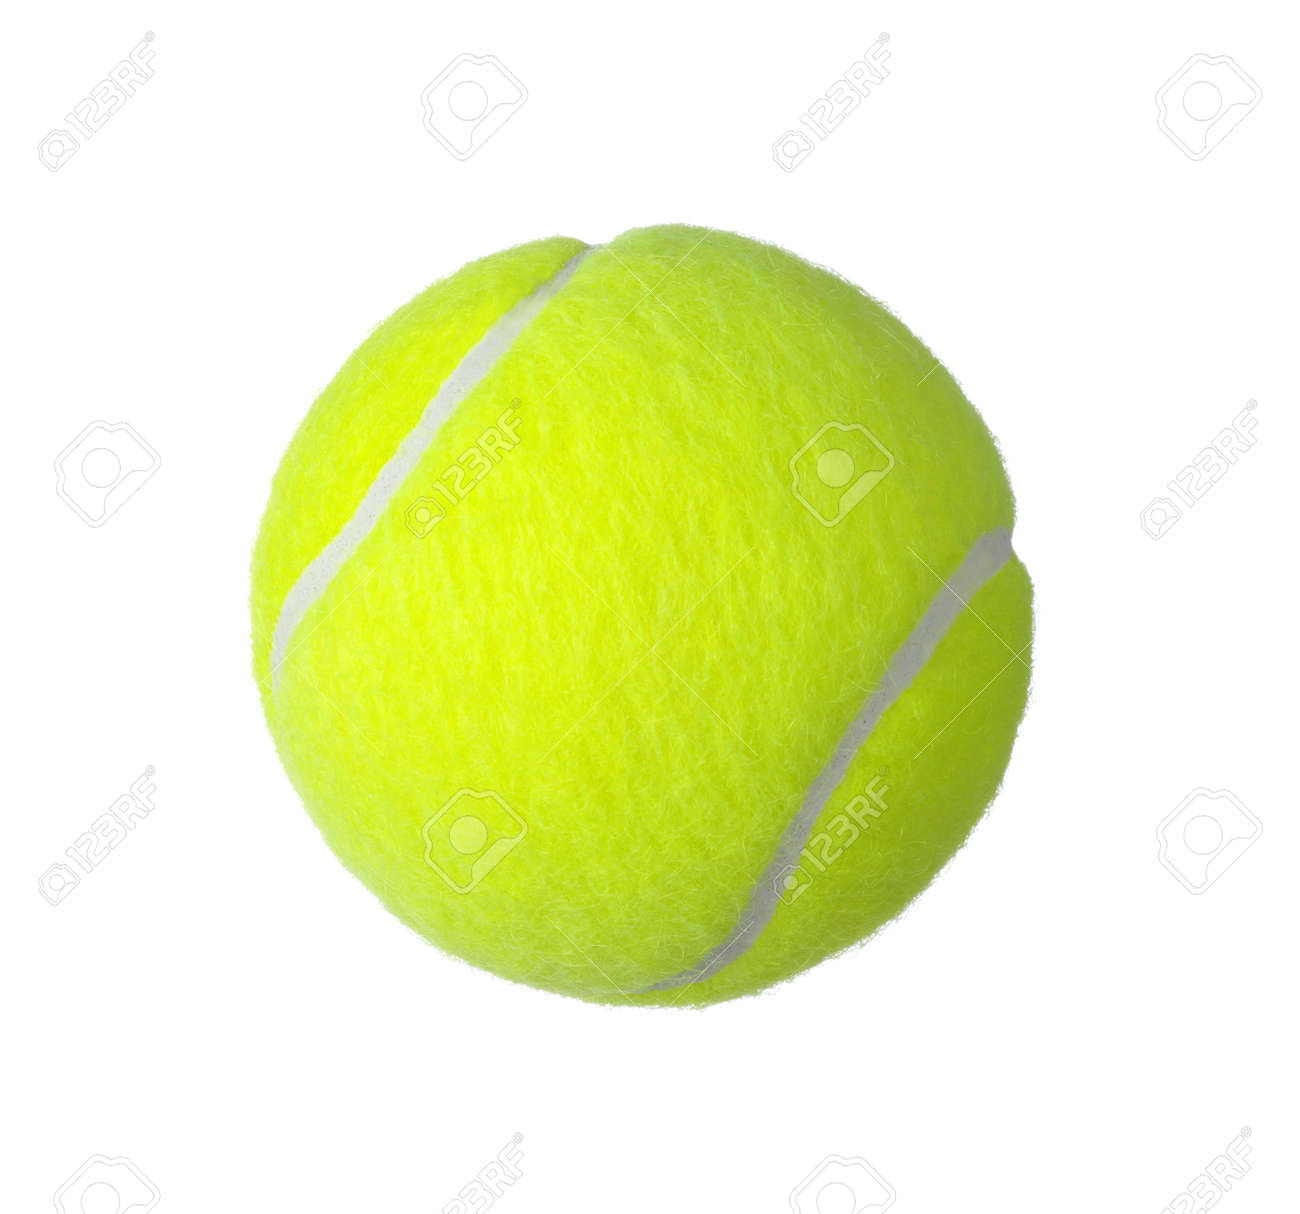 tennis ball isolated on white background Banque d'images - 37718530